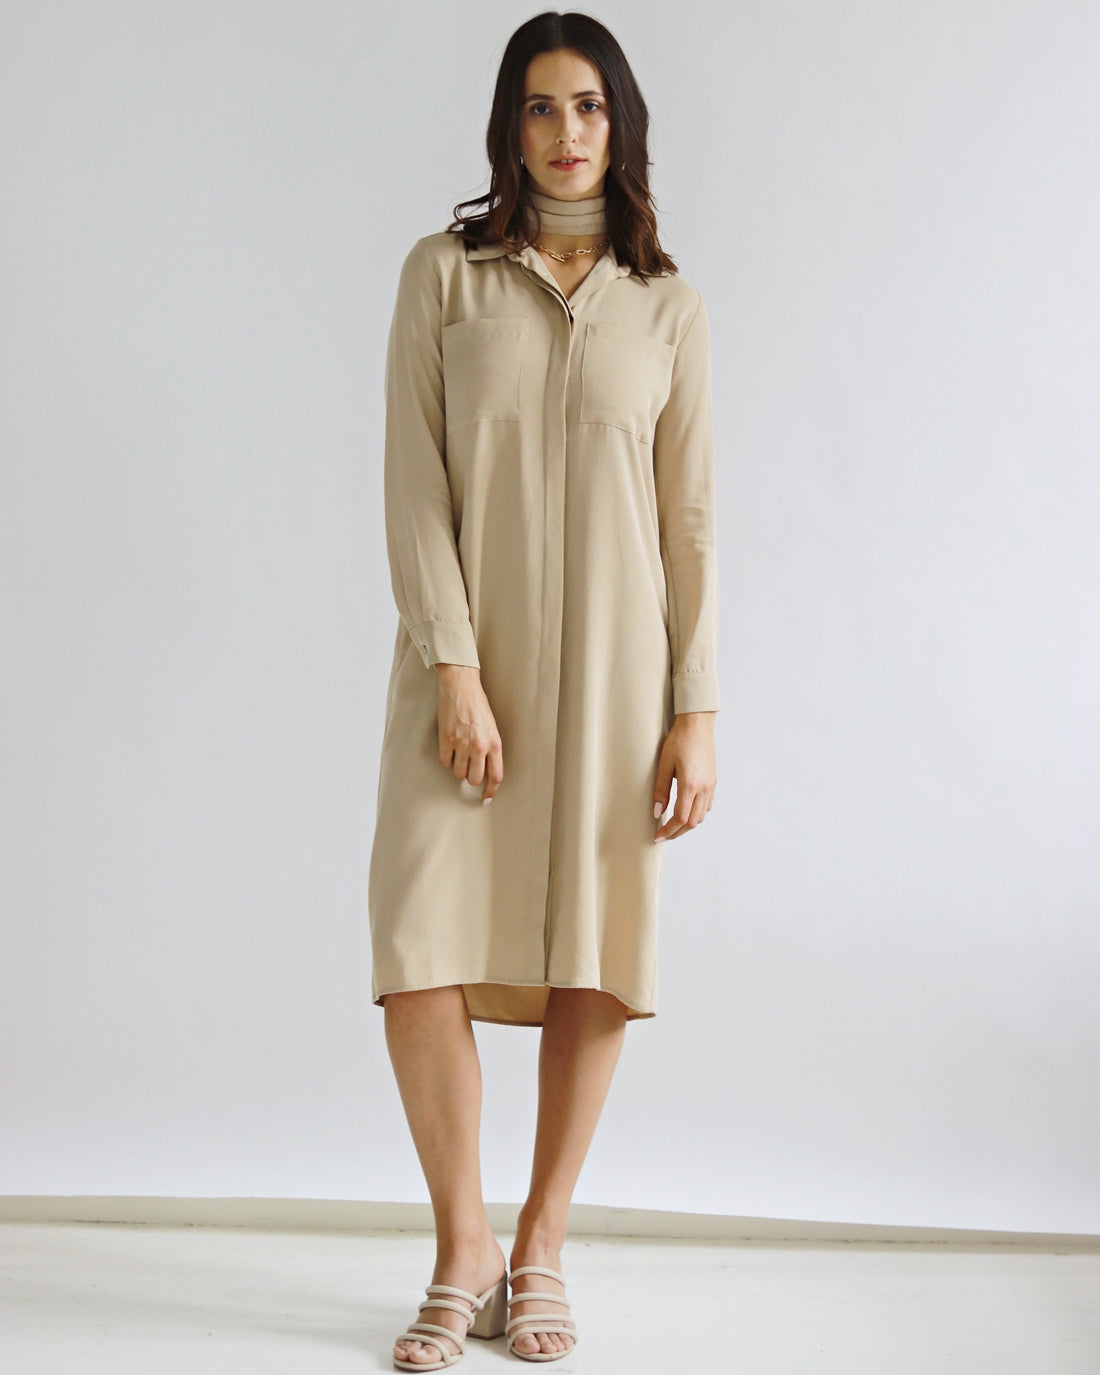 Malka Ginger Dress - Sarah Feldman Cape Town